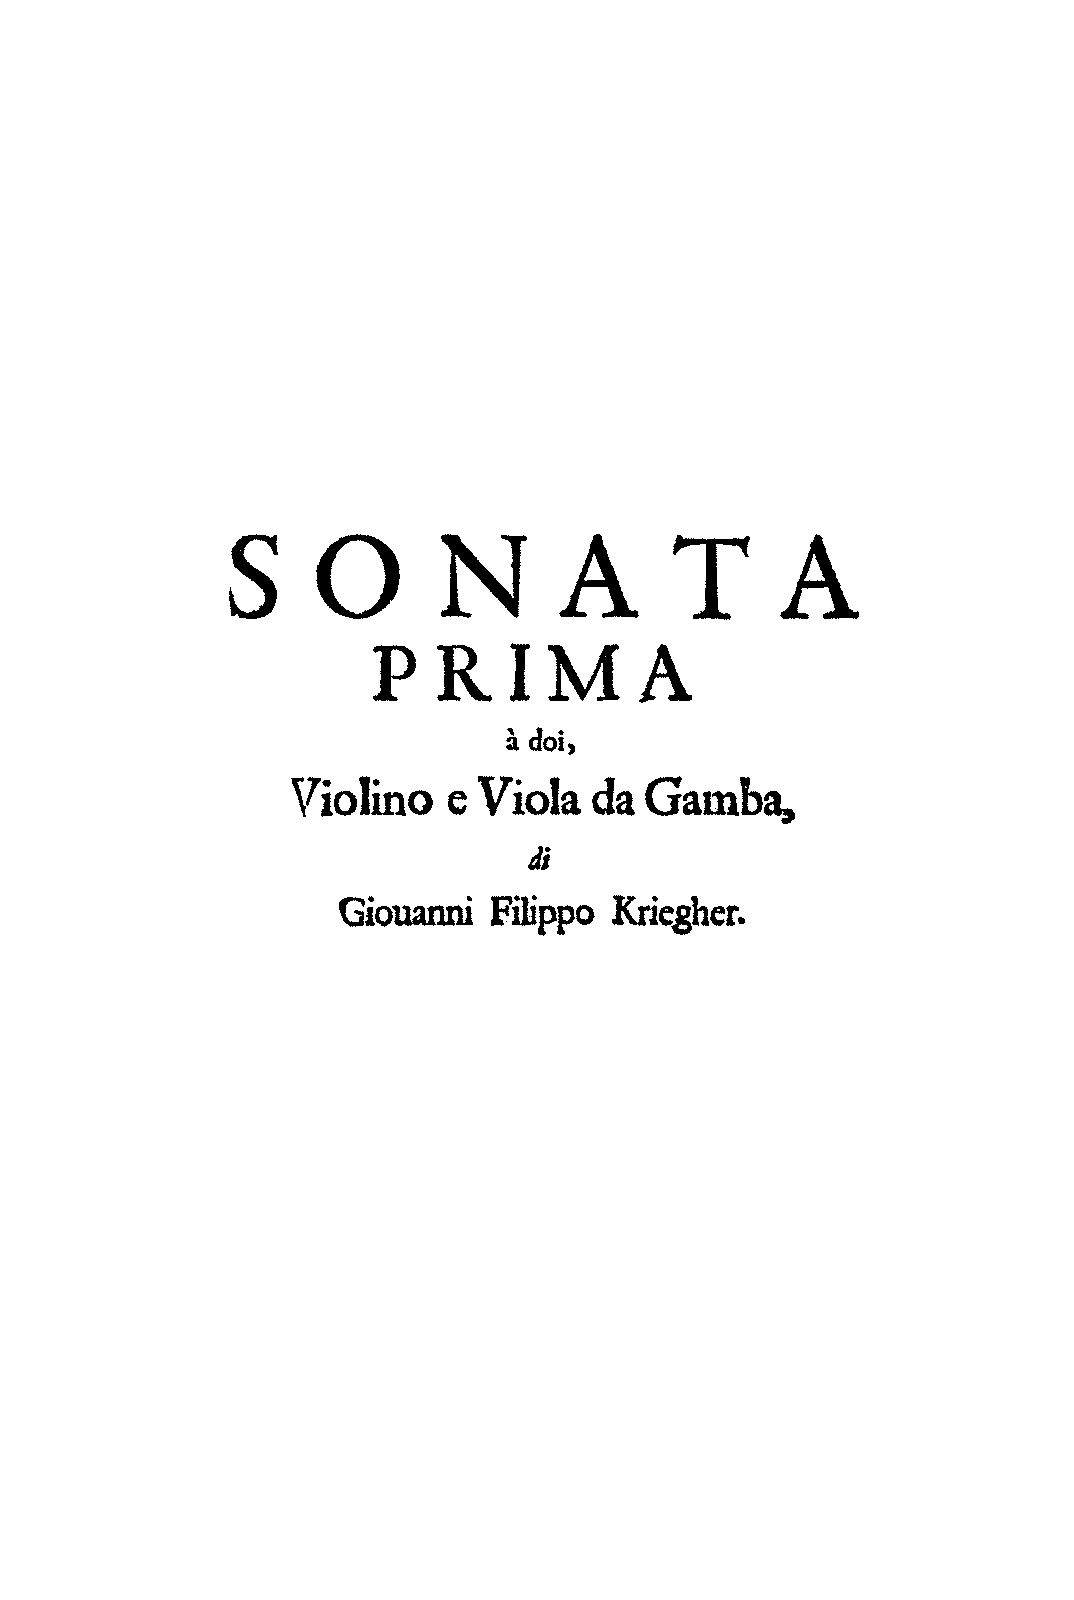 PMLP123899-Krieger - Sonata No1 in CM for Violin and Viola da Gamba and Cembalo (1693).pdf